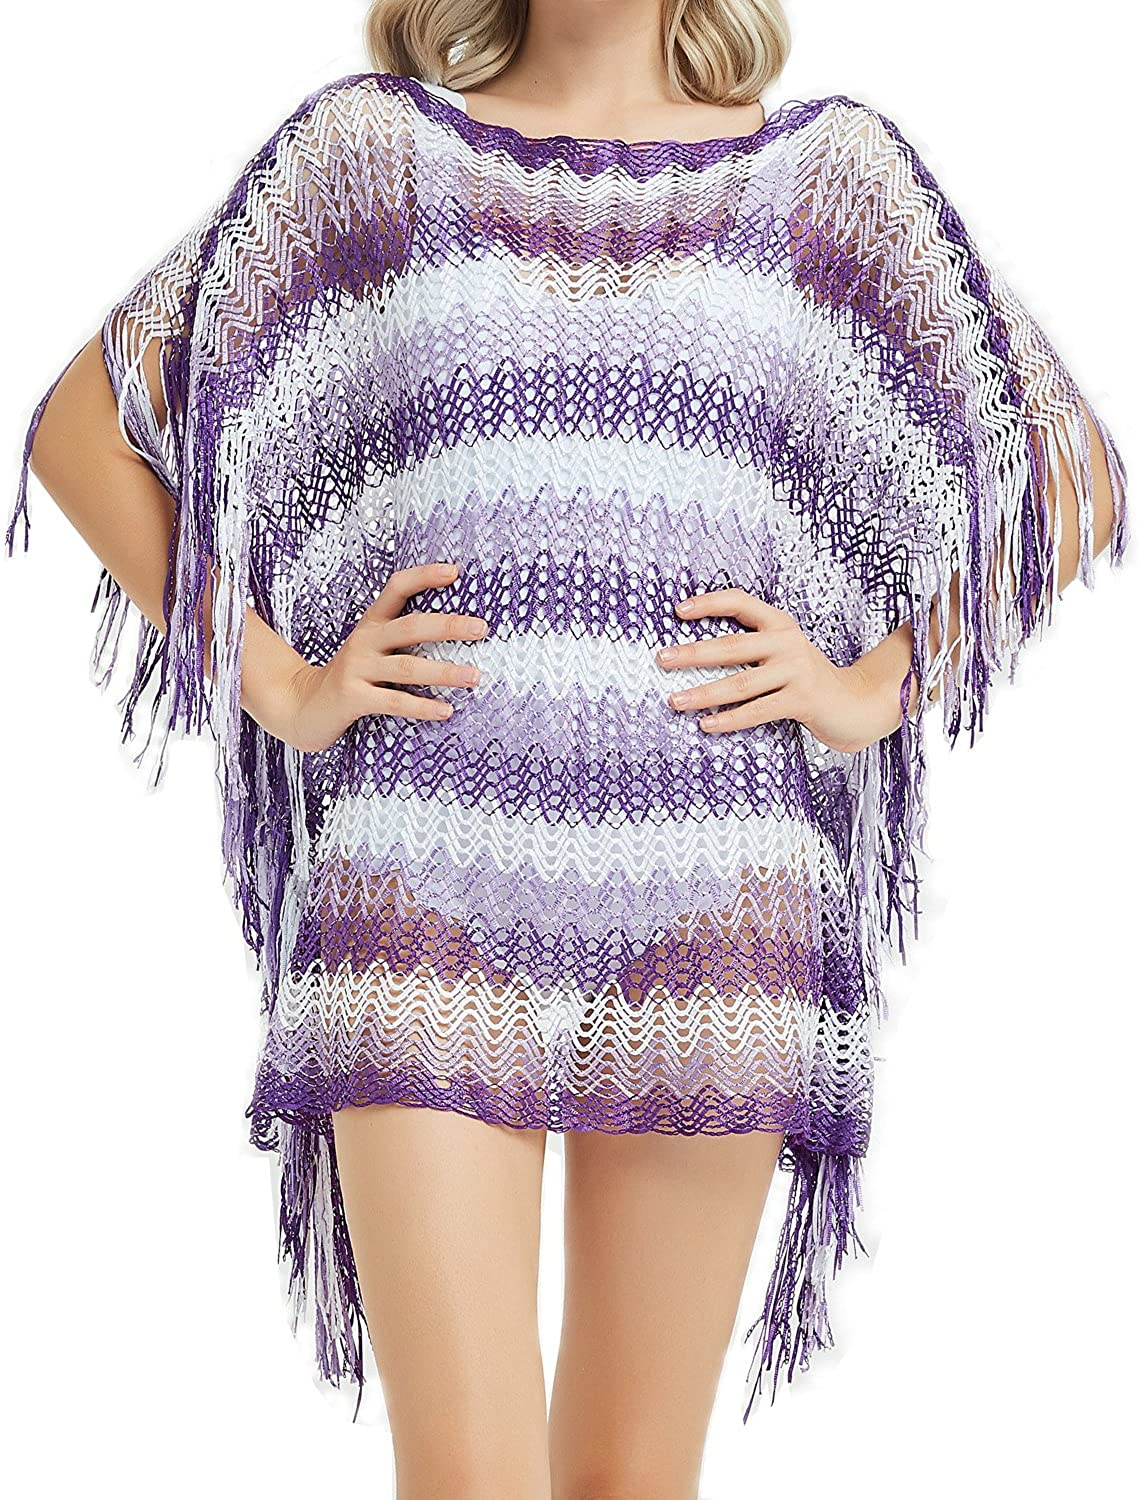 CHARMIX Beach Coverups for Women Fits 5'15'8, Bikini Swimsuit Cover up Bathing Suits for Women Mesh Polyester(Purple)